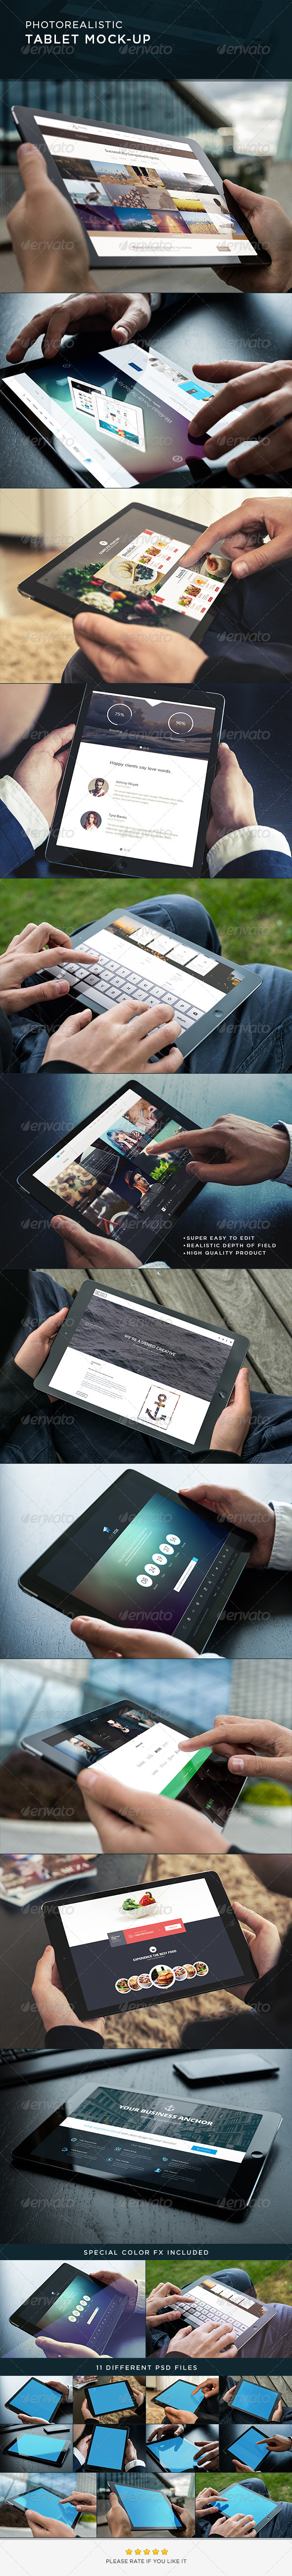 GraphicRiver Photorealistic Tablet Mock-Up 8765380